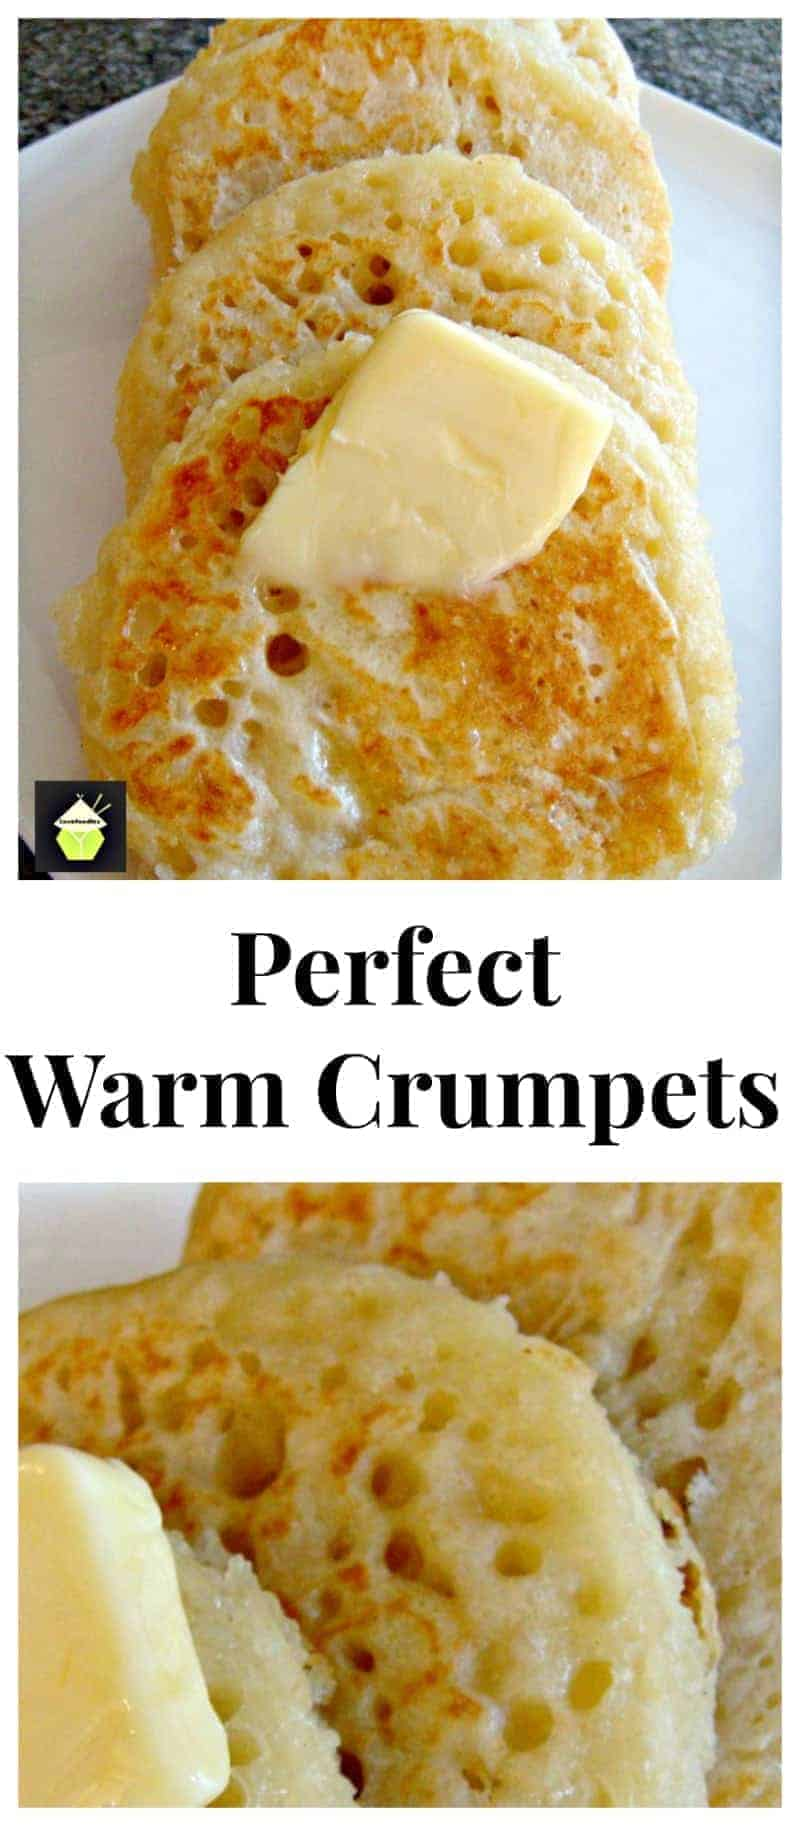 Perfect Warm Crumpets - Great for breakfast or anytime! Serve with your favorite jam, or eggs and bacon, delicious whichever way you like them!